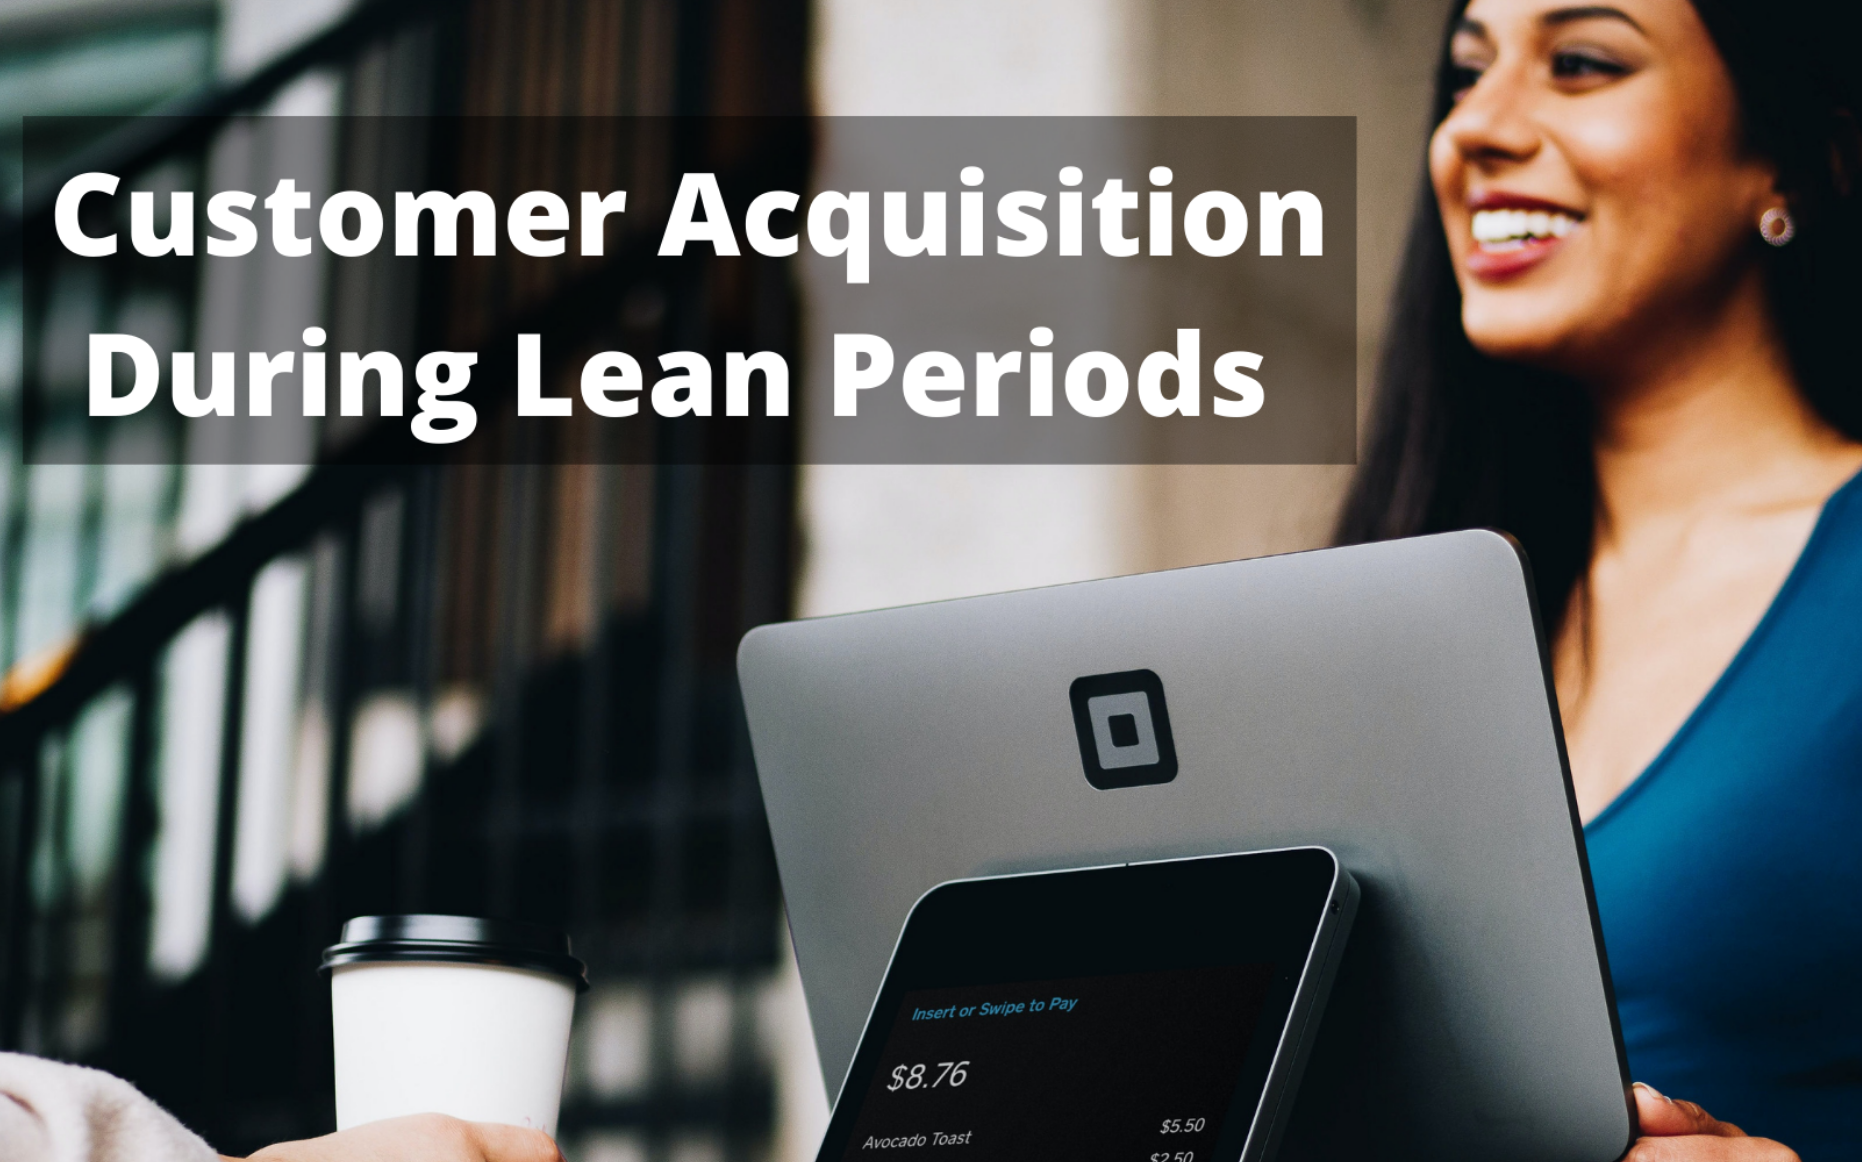 How to Boost Customer Acquisition During Lean Periods